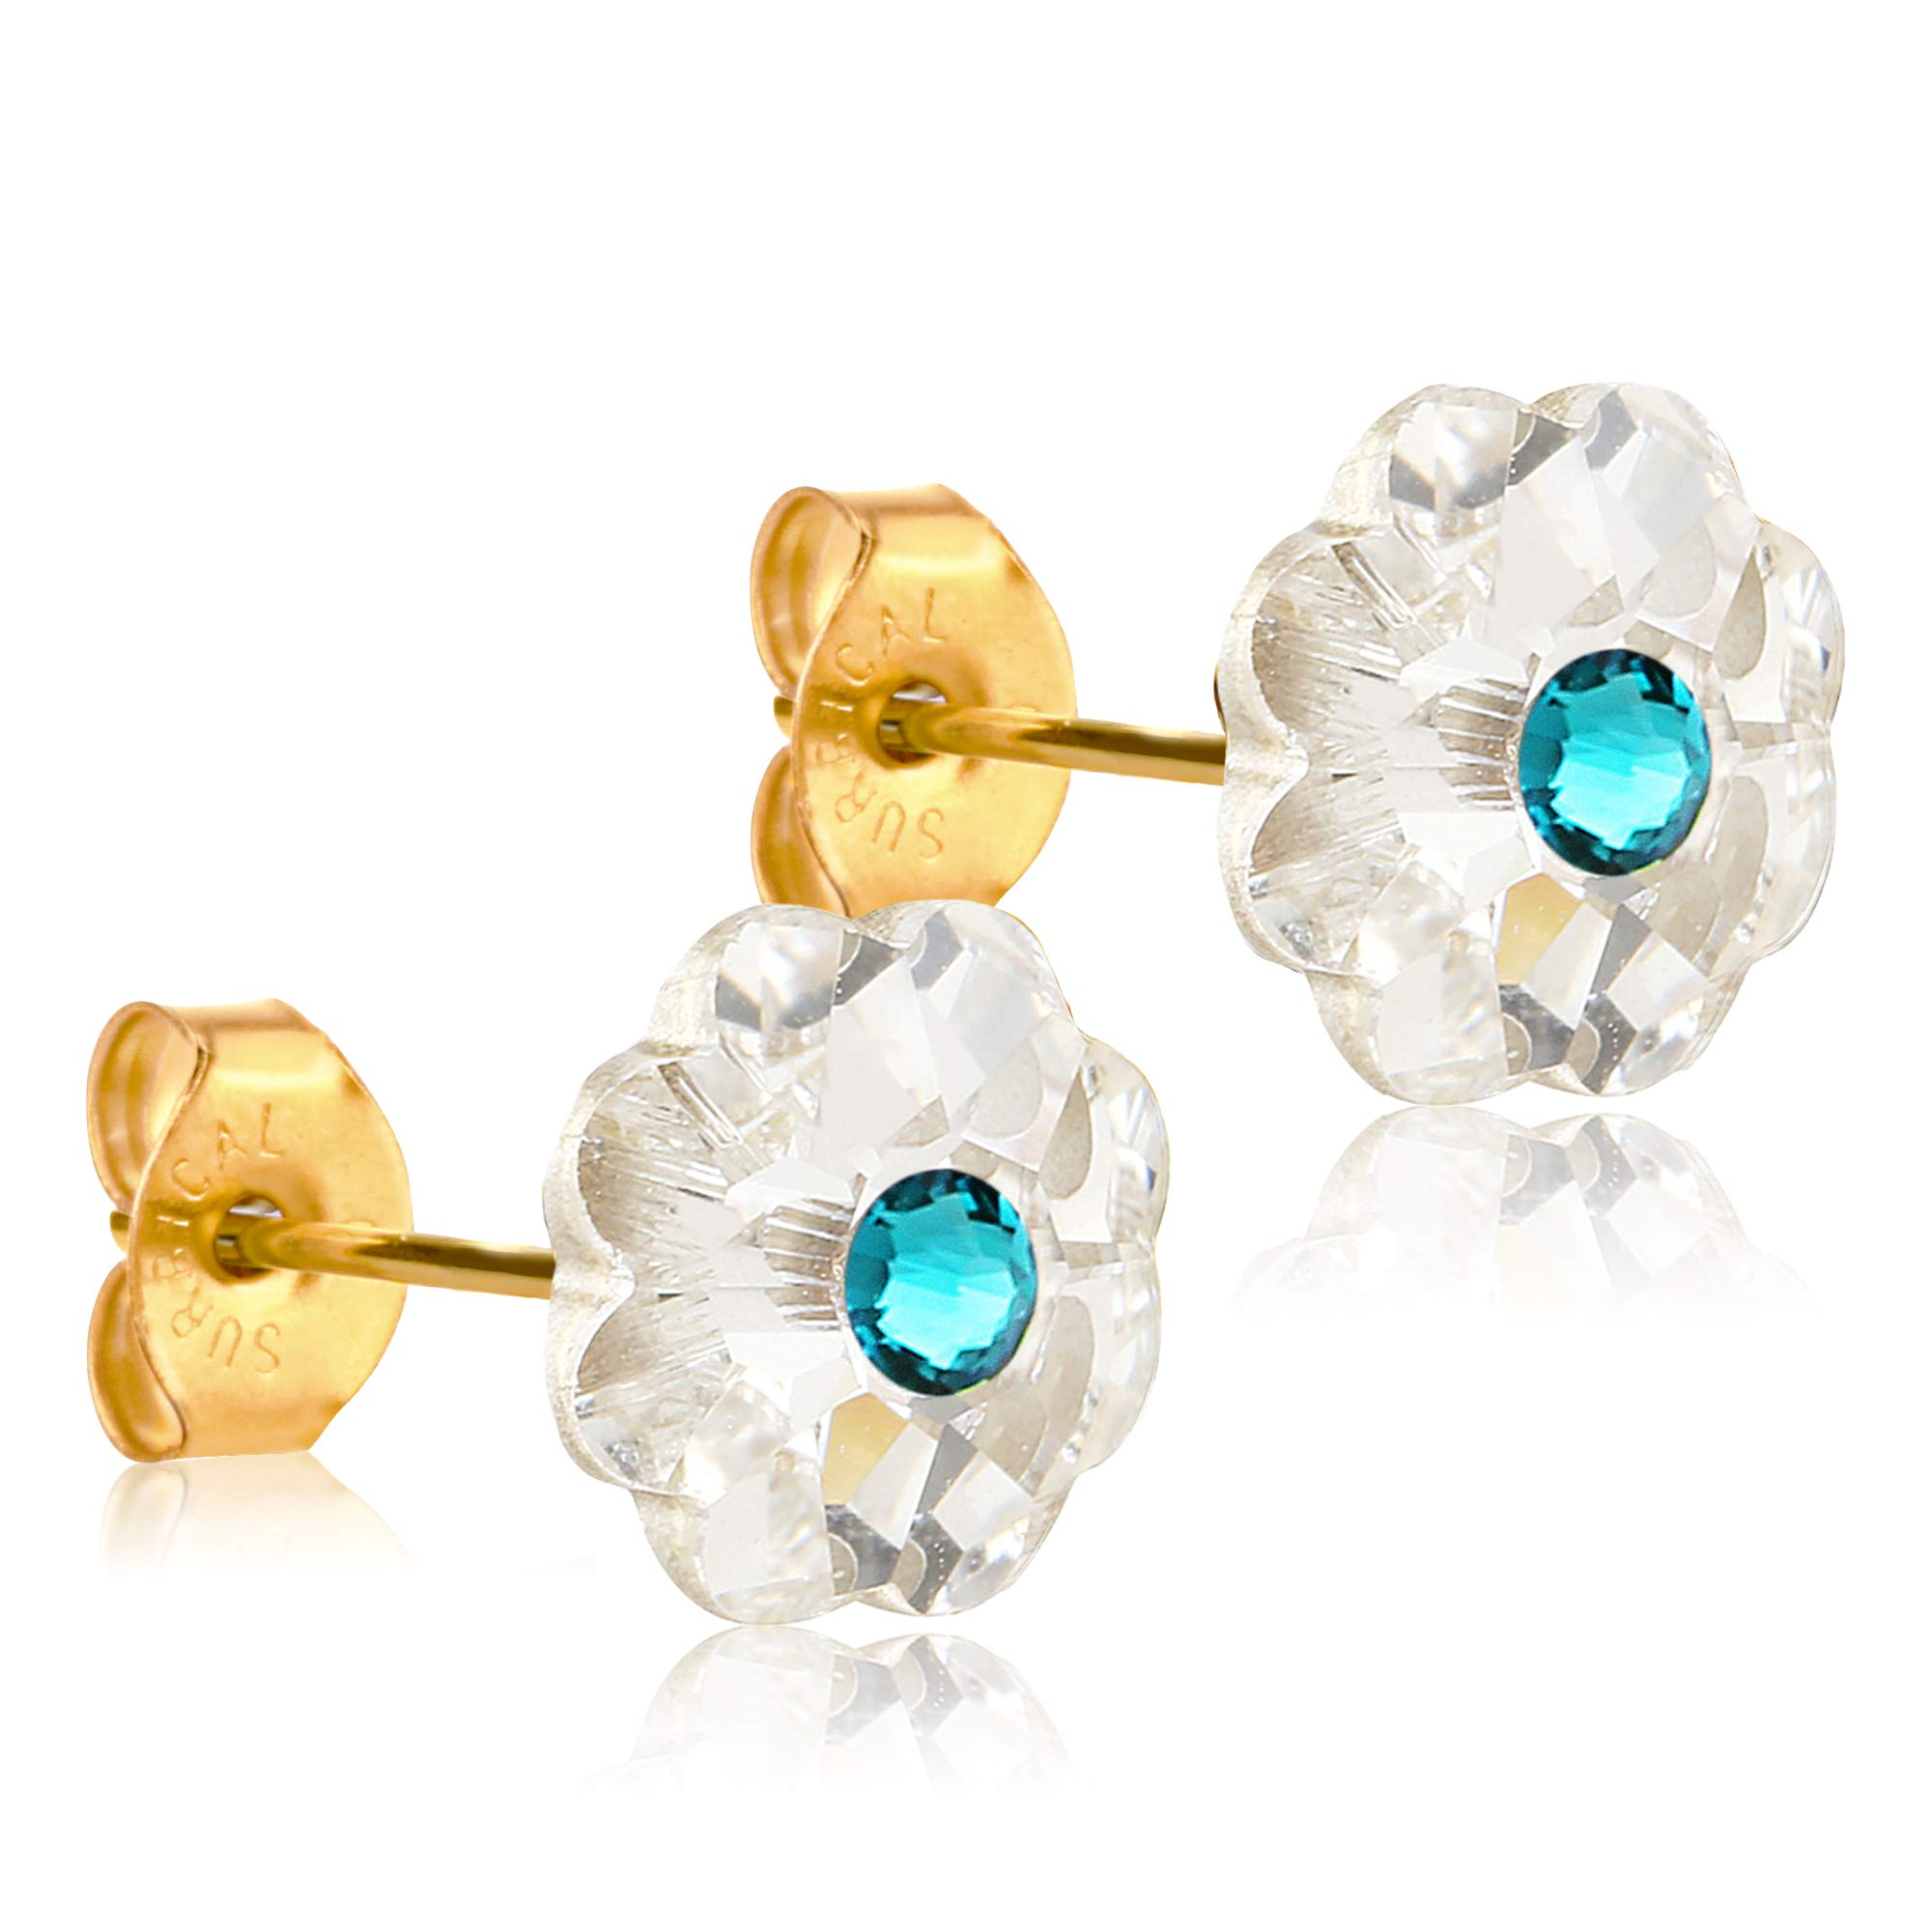 14k Gold Coated Earrings for Women & Girls| 10mm Swarovski Flower Crystals| Made With Hypoallergenic, Surgical Stainless Steel great for sensitive ears| Jewelry Gifts for Women